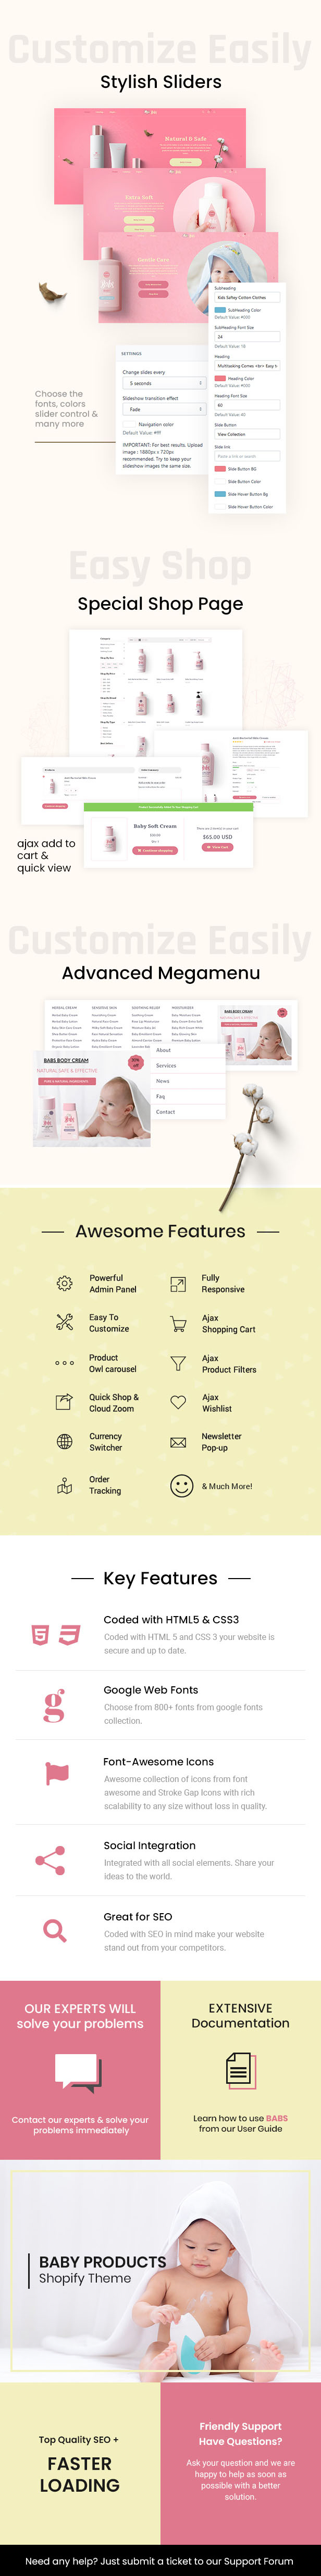 Babs - Baby Shop Shopify Theme - 1